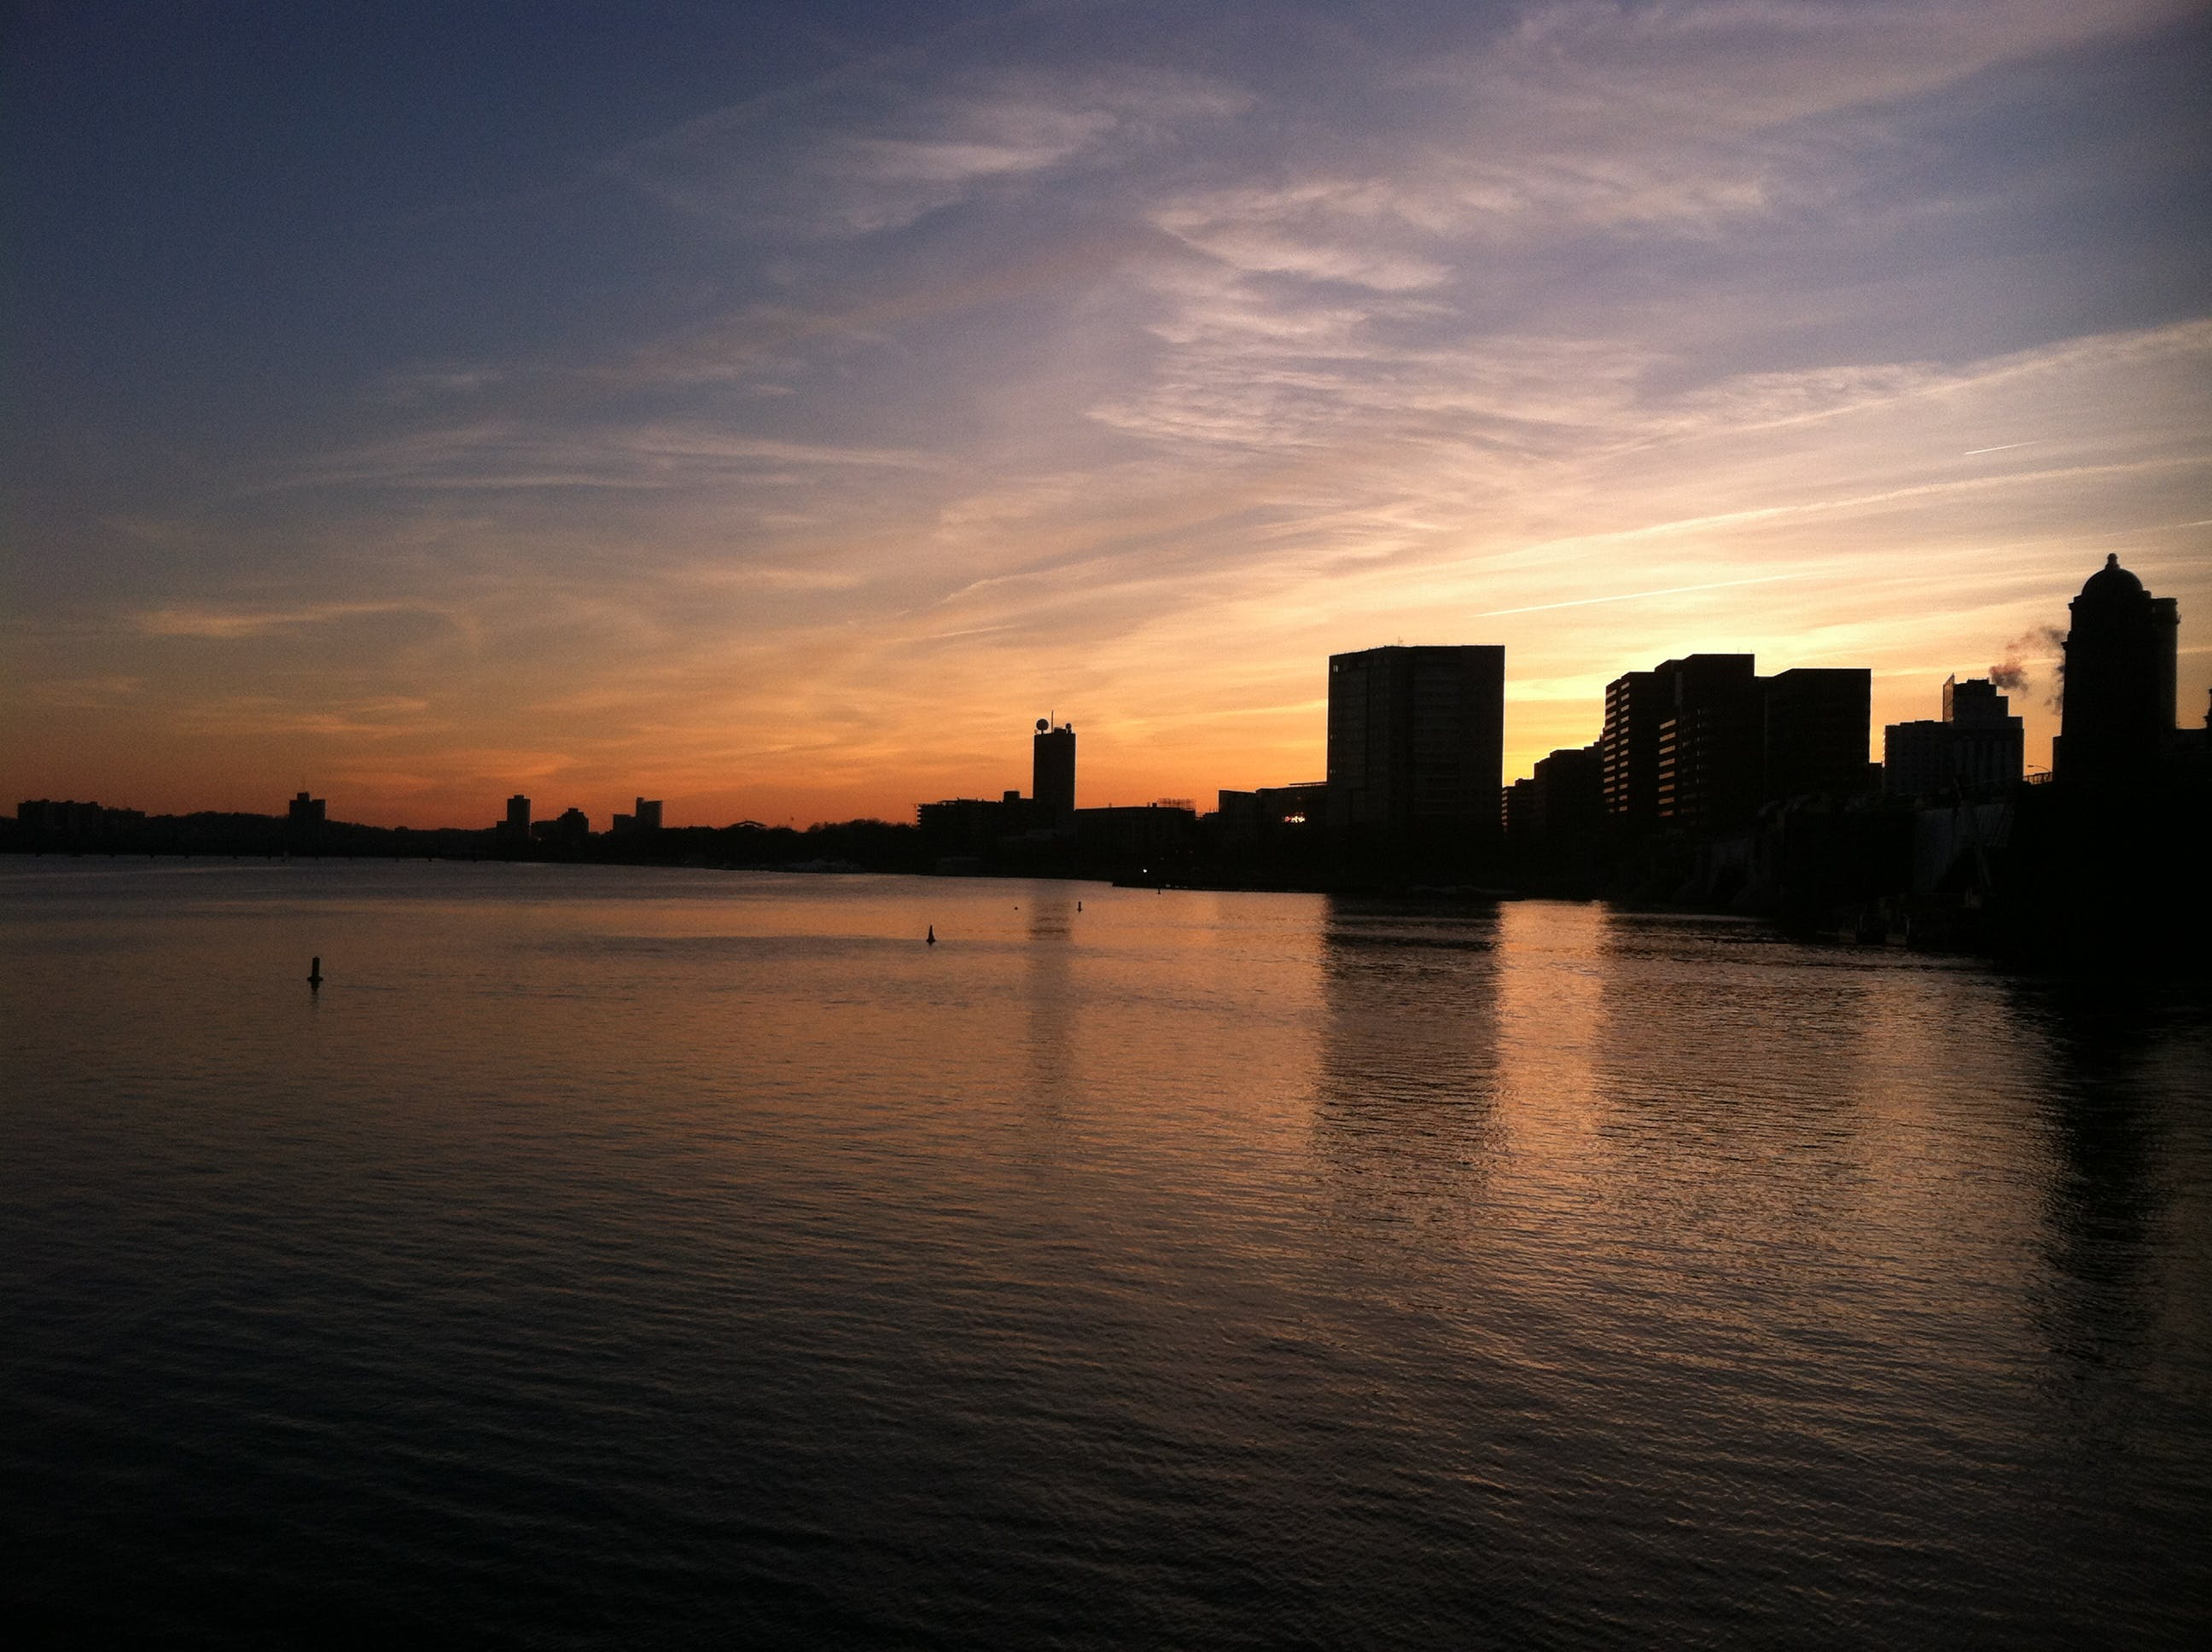 Silhouette Photograph of Buildings Near Calm Body of Water